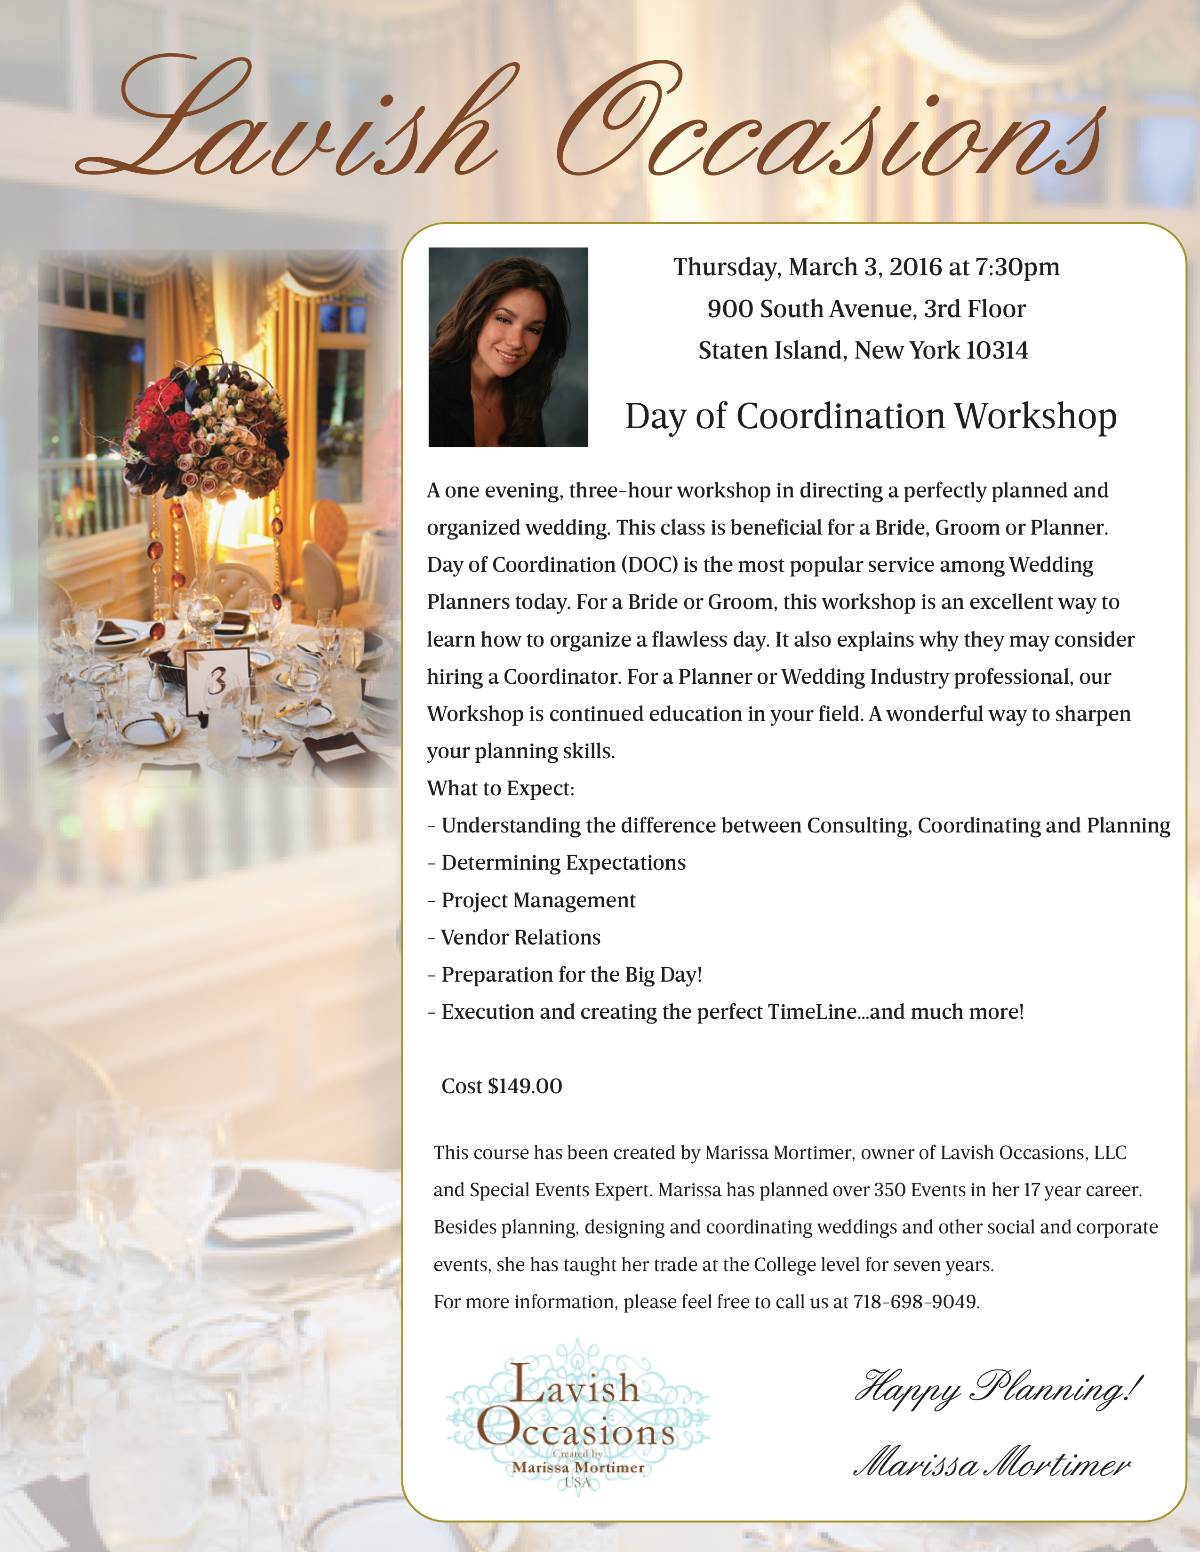 dayofcoordination-101 MARCH 2015